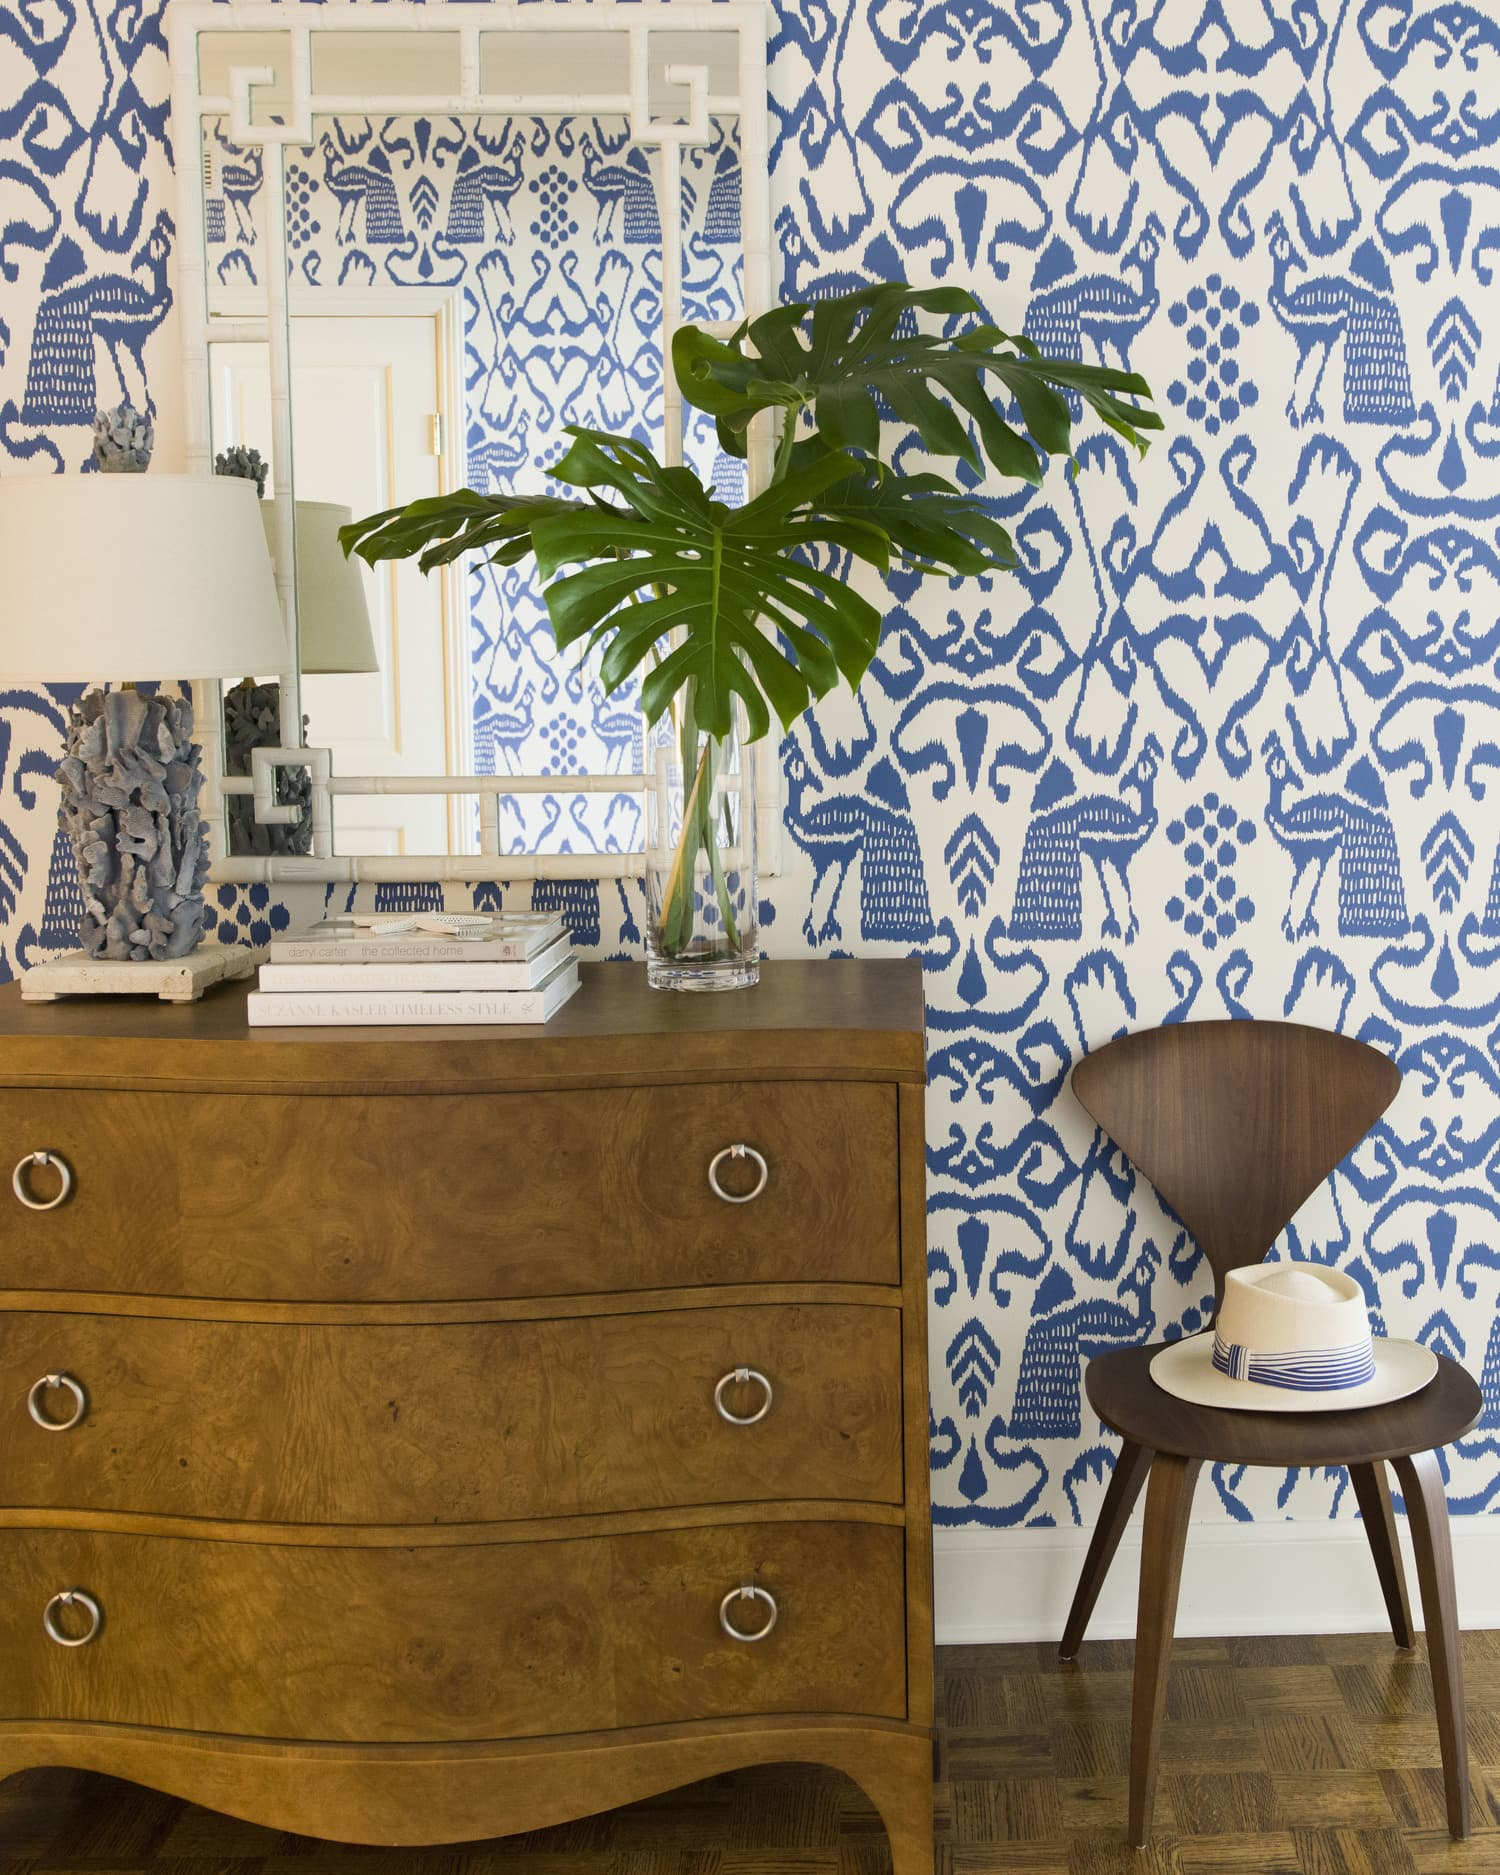 this is a bedroom with an abstract wallpaper of wildlife